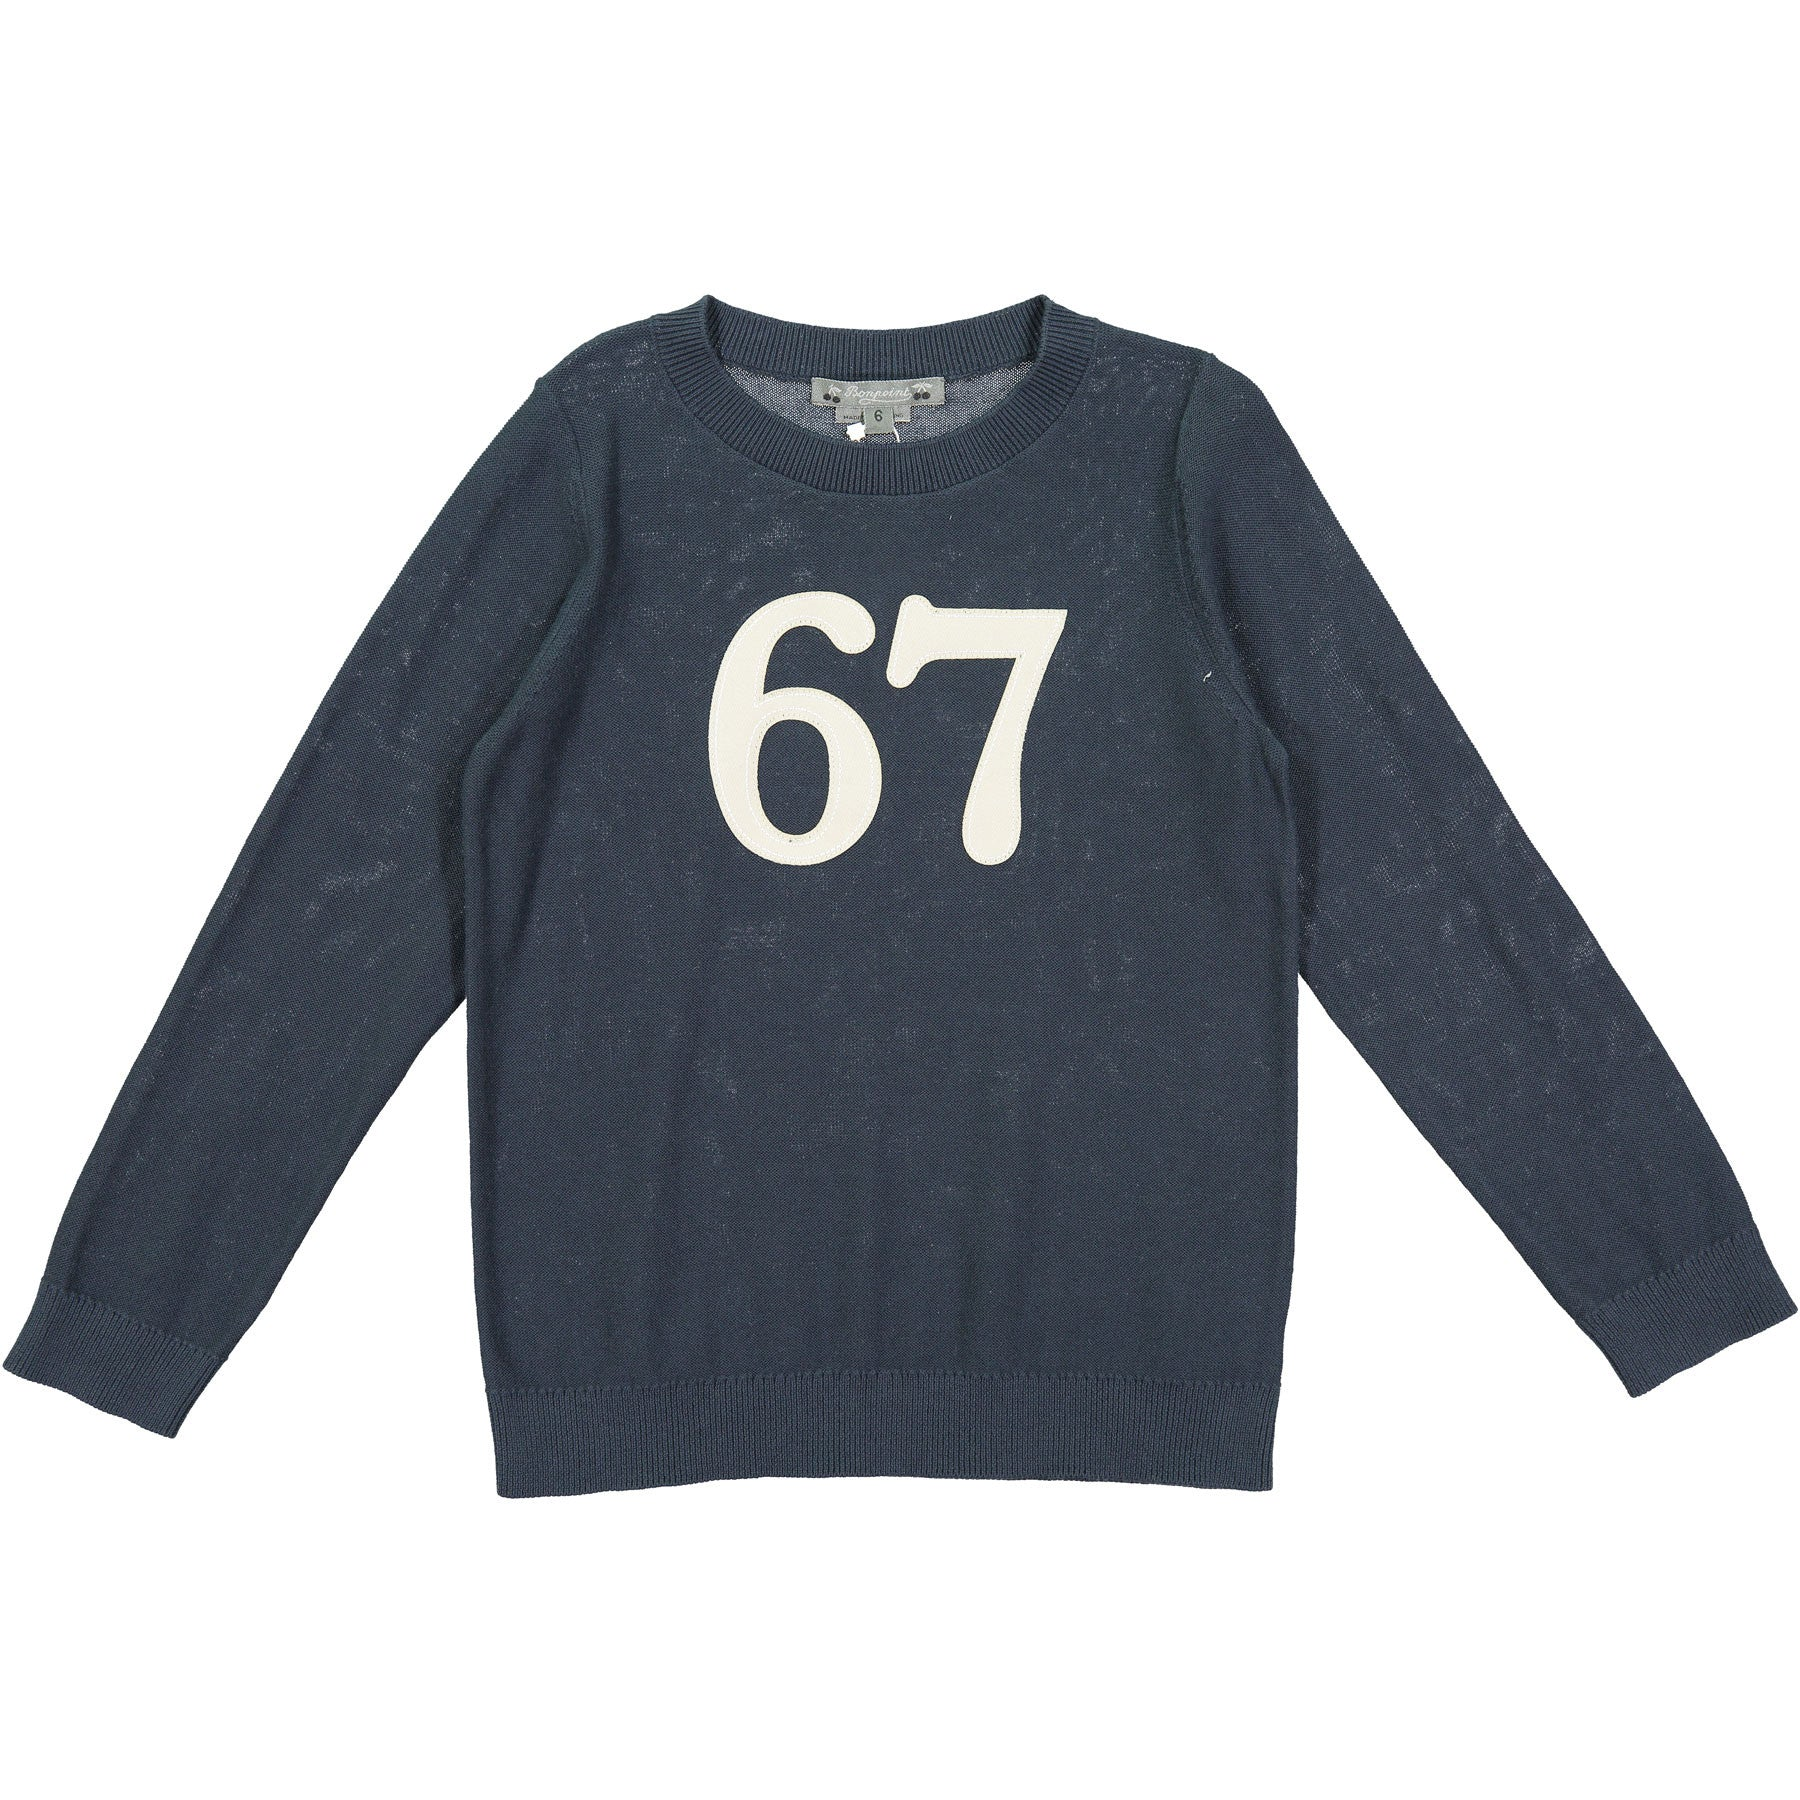 Bonpoint Blue Knit 67 Pullover - Ladida